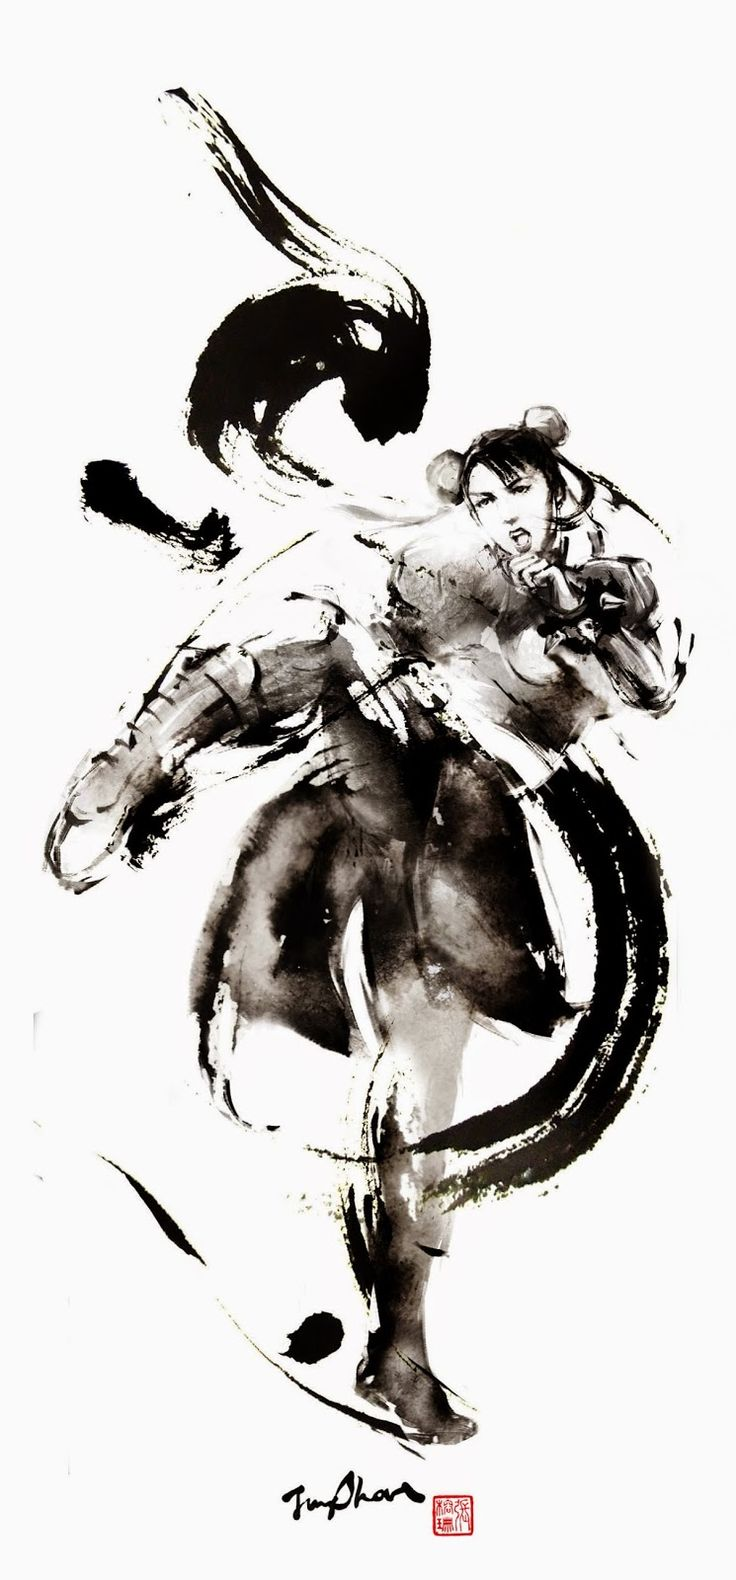 Chinese artist Rola Chang, aka Jung Shan from Taiwan. Asian inspired ink paintings combining eastern and western elements http://jungshan.deviantart.com/ http://jung-shan.blogspot.com/?m=1   張榕珊 http://jung-shan.blogspot.tw/